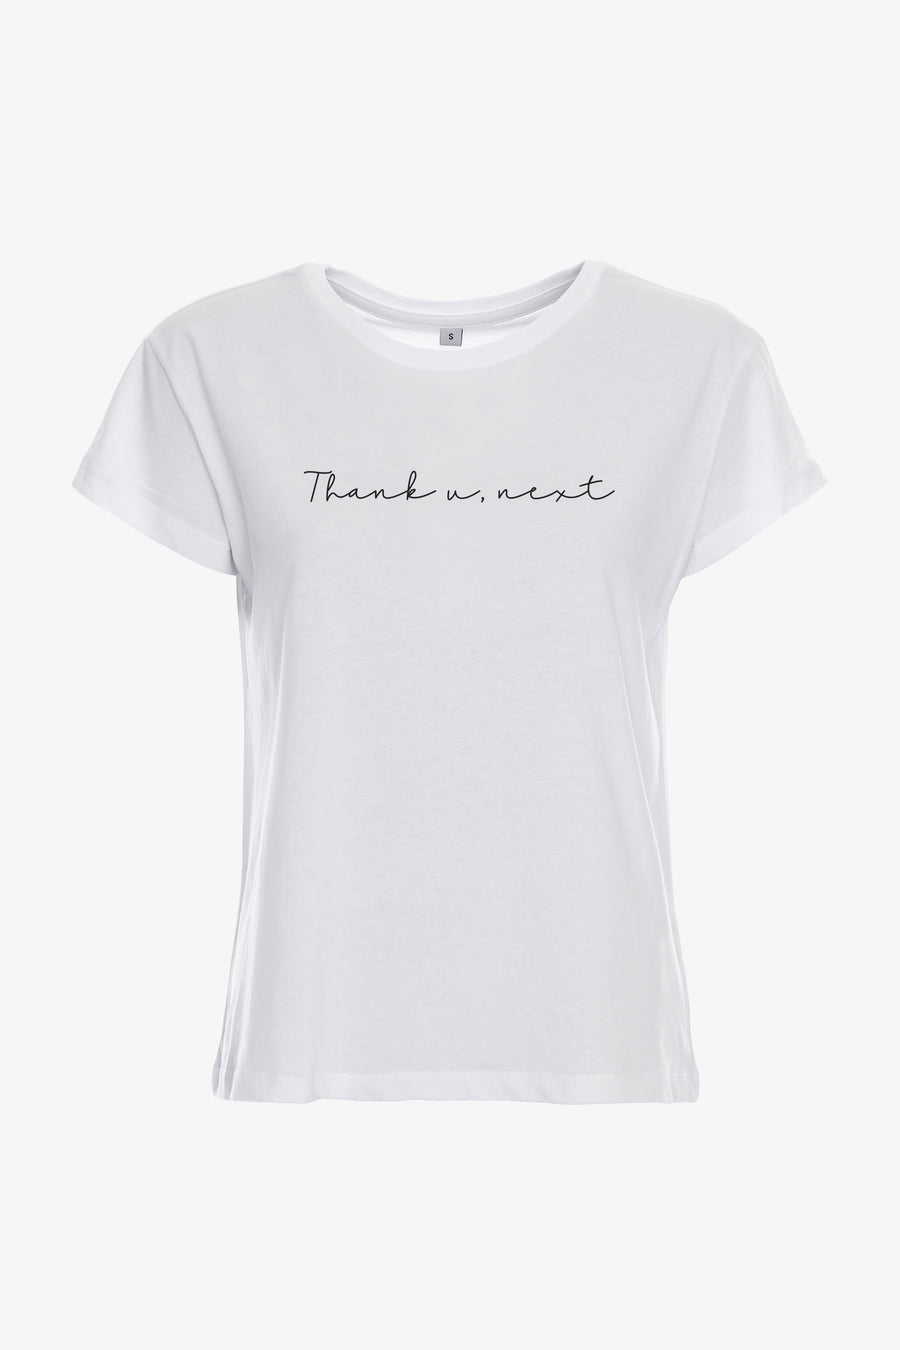 Gossengold - Thank U Next Slogan T Shirt Damen - Weiß